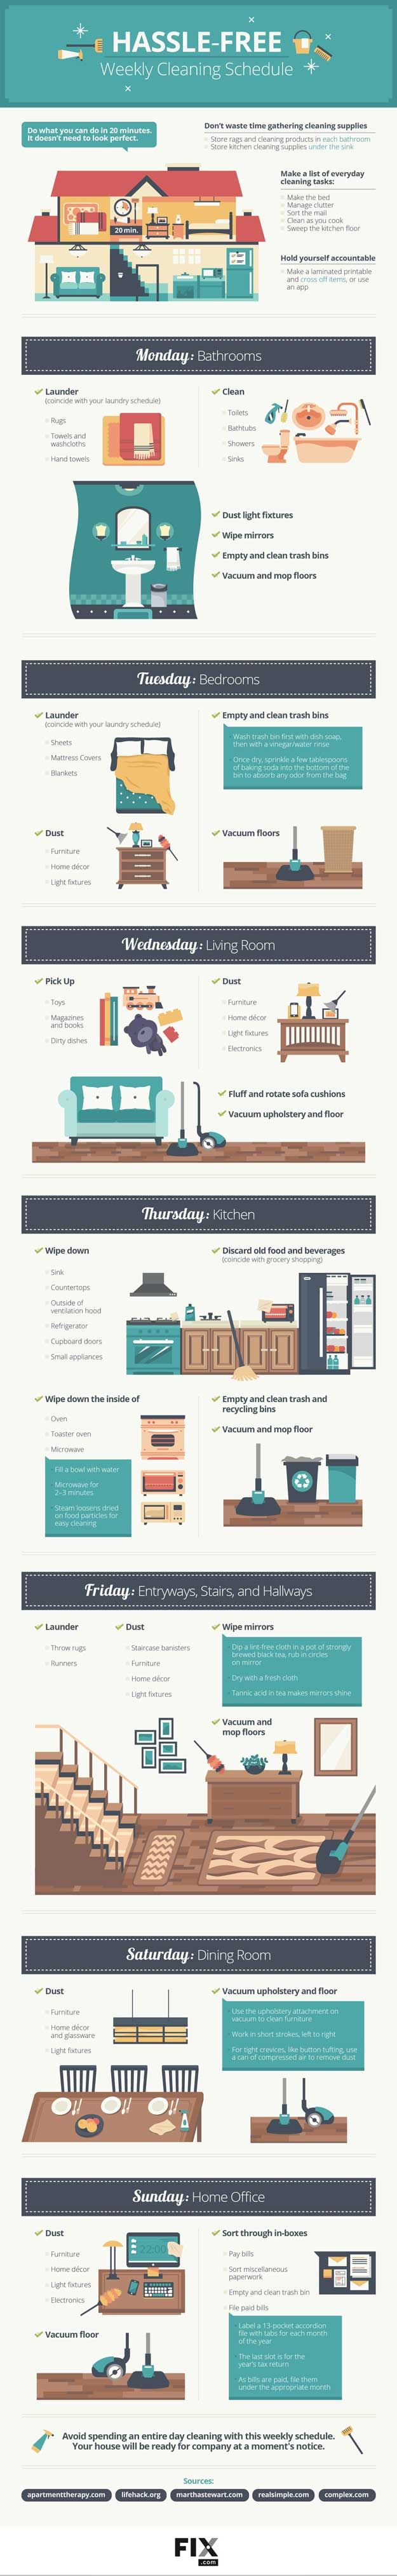 Weekly Cleaning Schedule | Homesteading Tips | Home Improvement Ideas by Pioneer Settler at http://pioneersettler.com/weekly-cleaning-schedule-infographic-homesteading-tips/